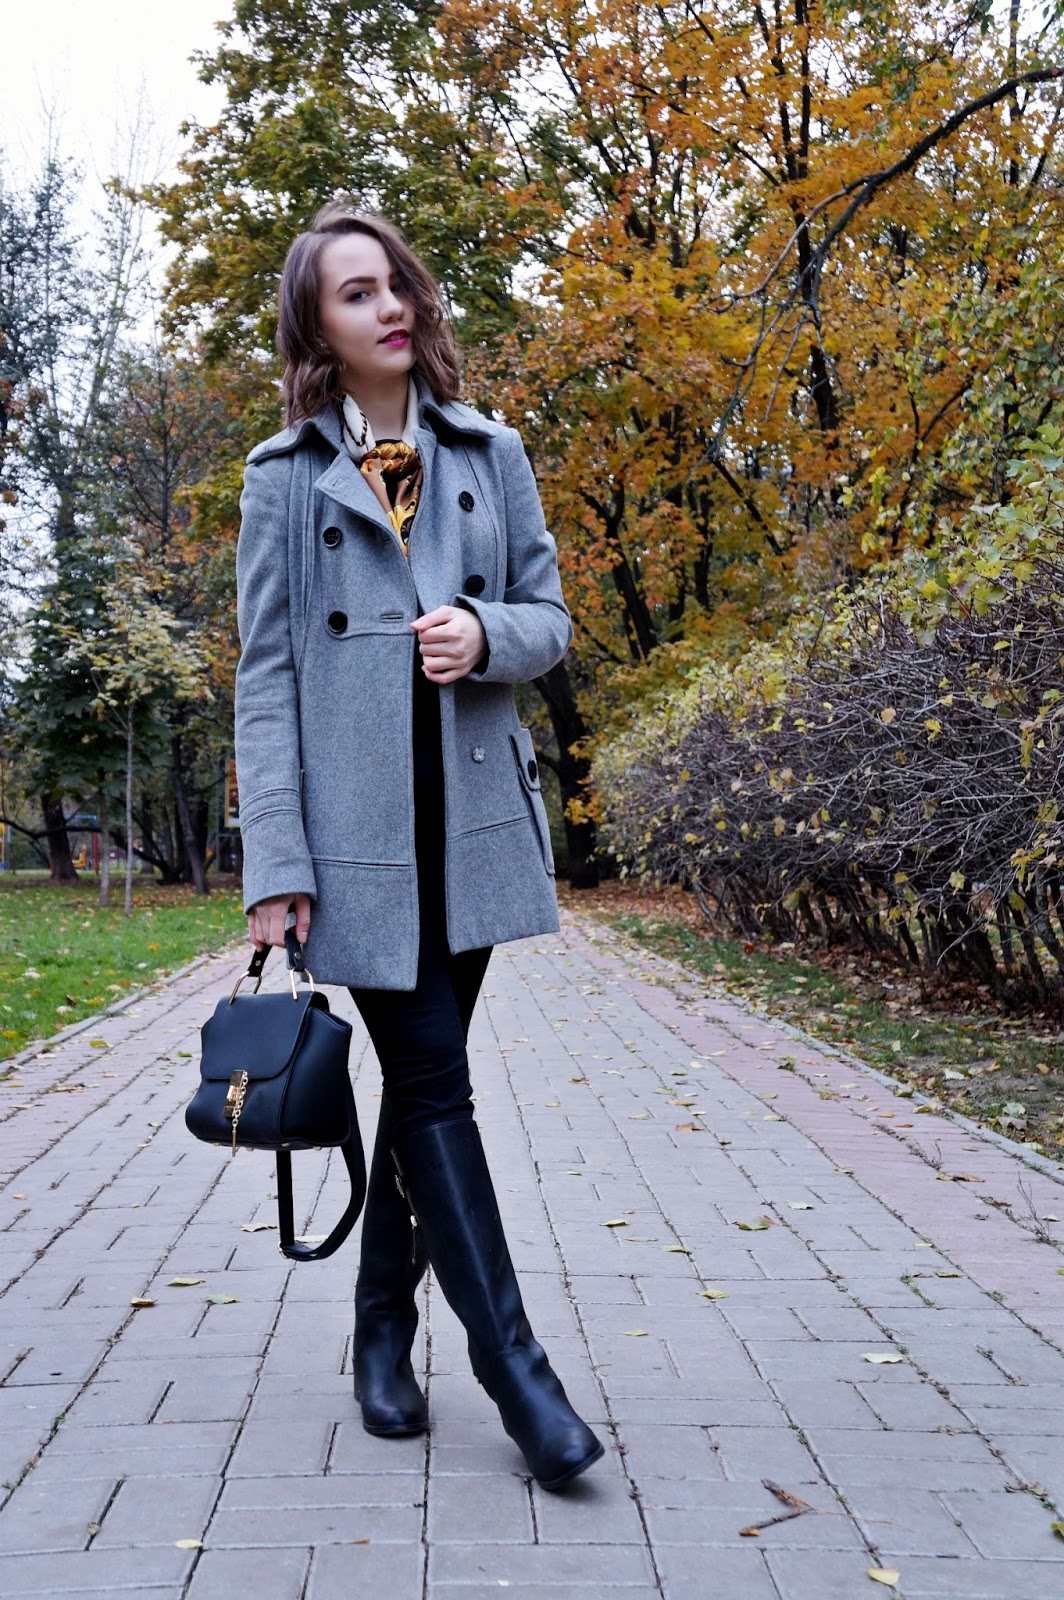 Grey coat | Fashion blogger | Alina Ermilova | Winter look